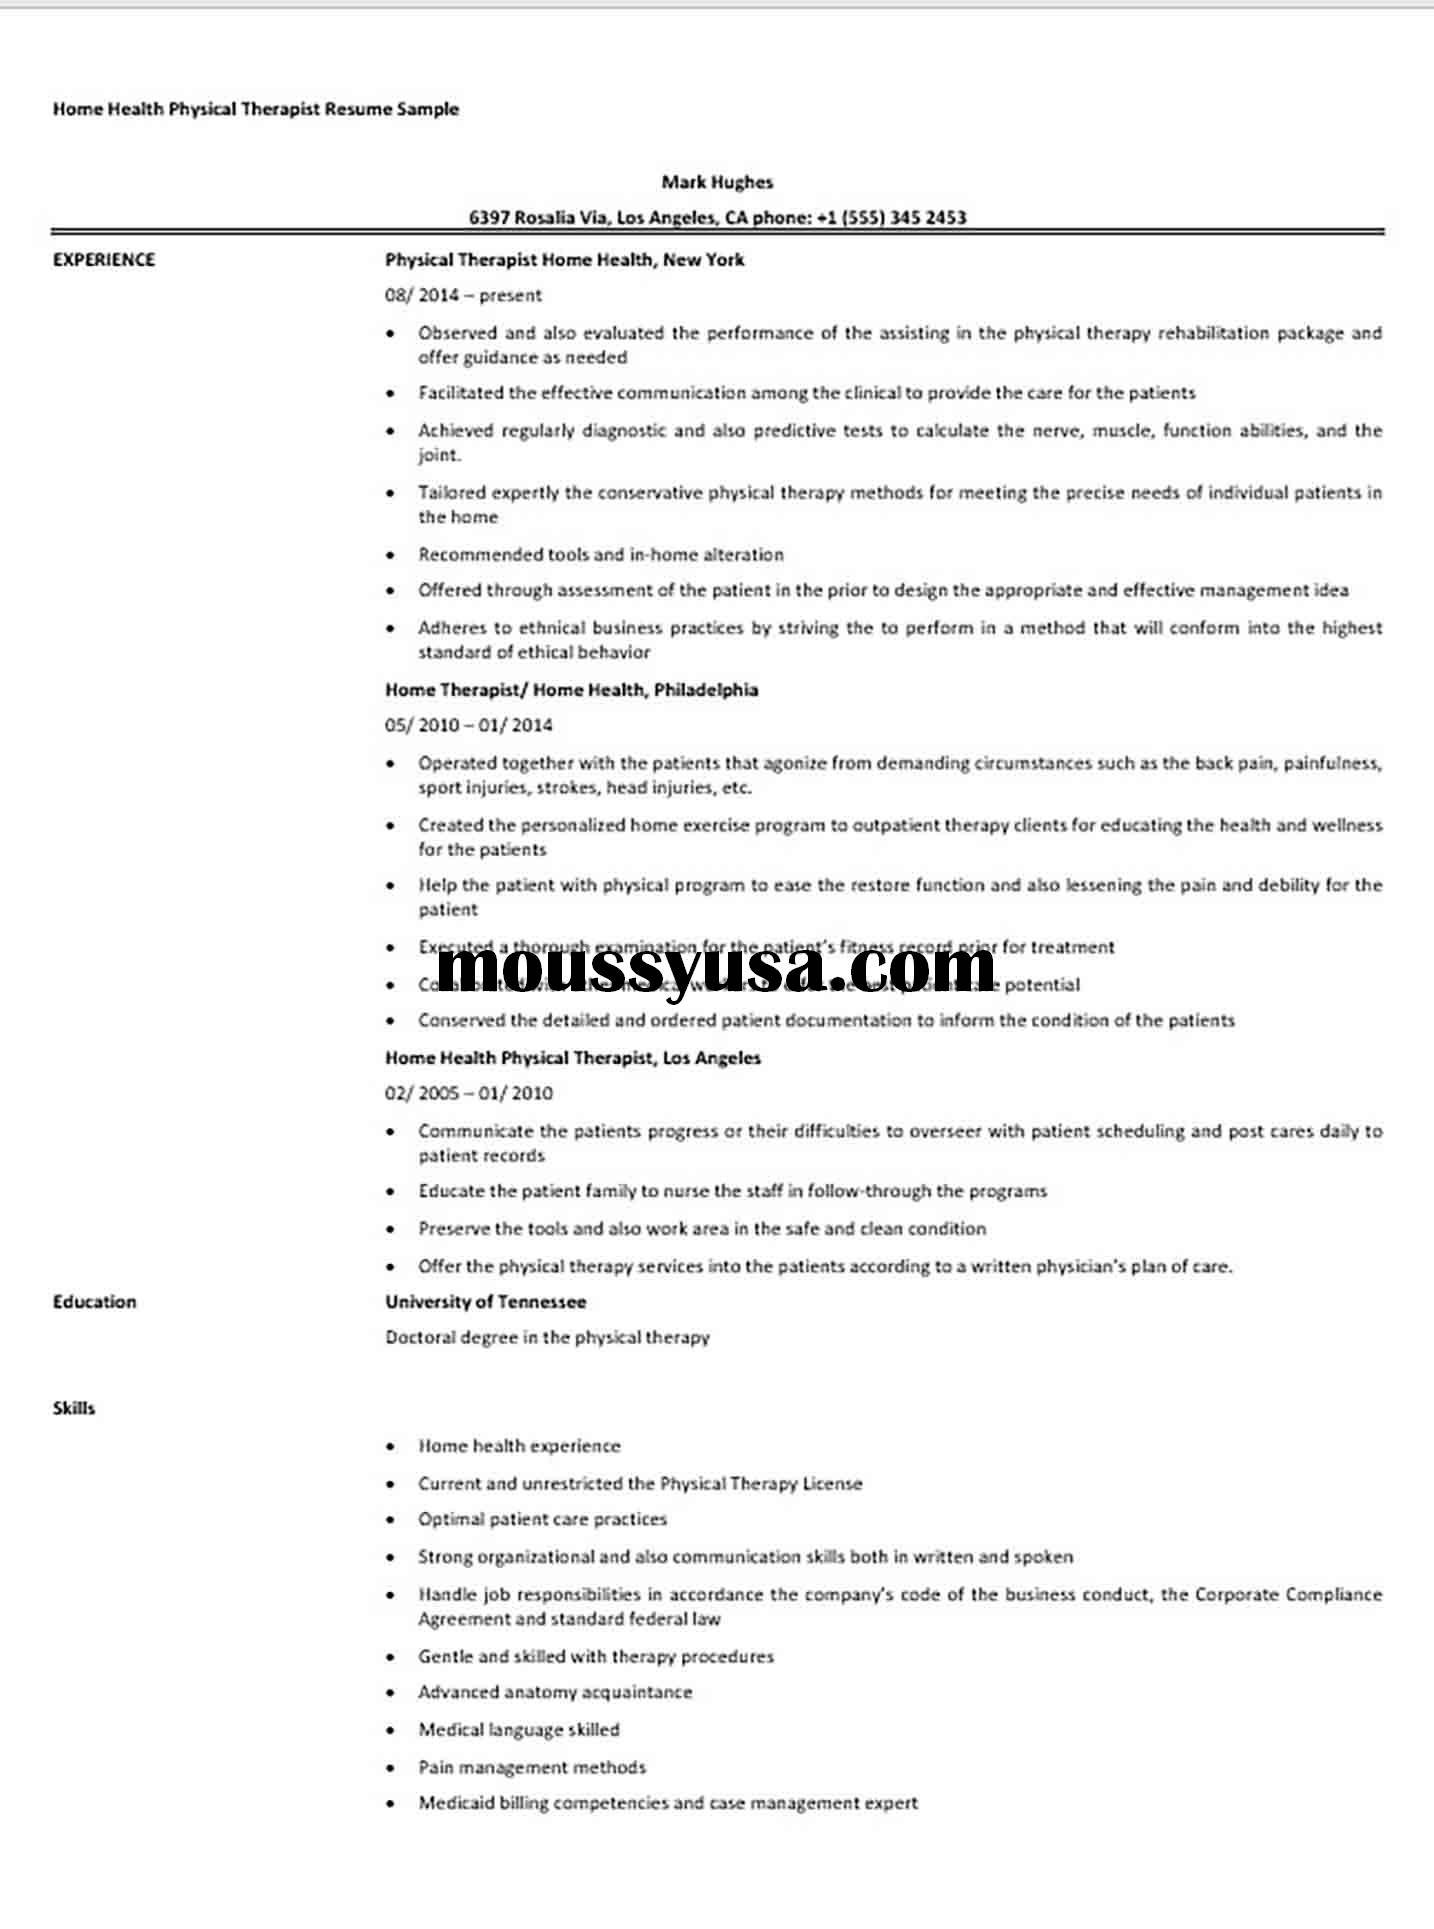 Home Health Physical Therapist Resume Sample